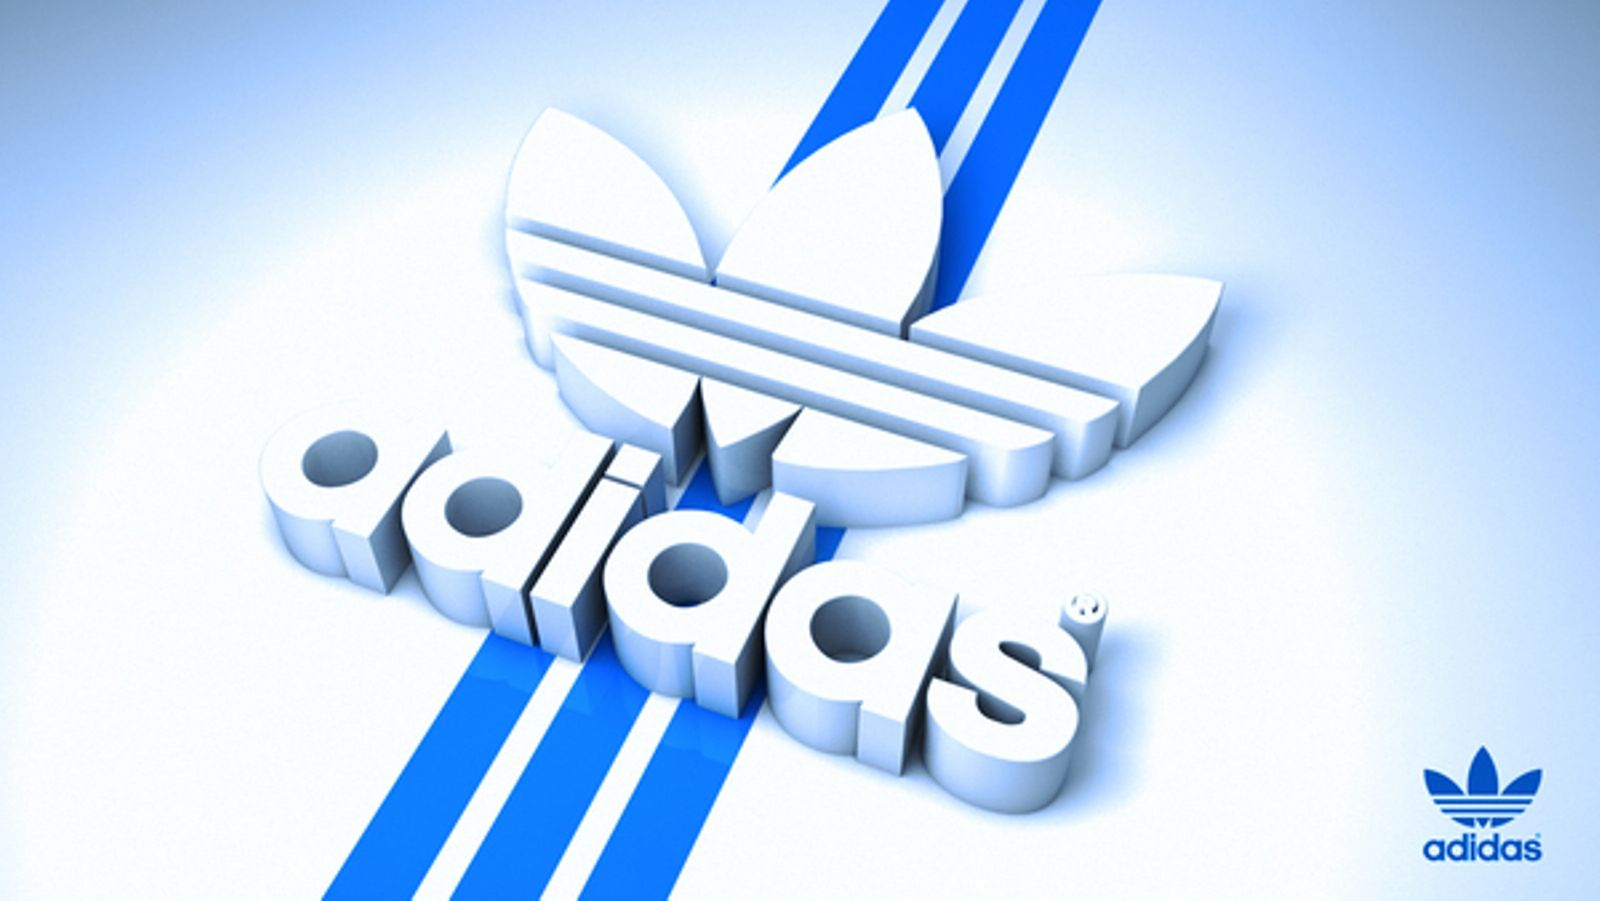 Adidas Logo 3d Wallpaper Hdg 1600901 Baseball Pinterest